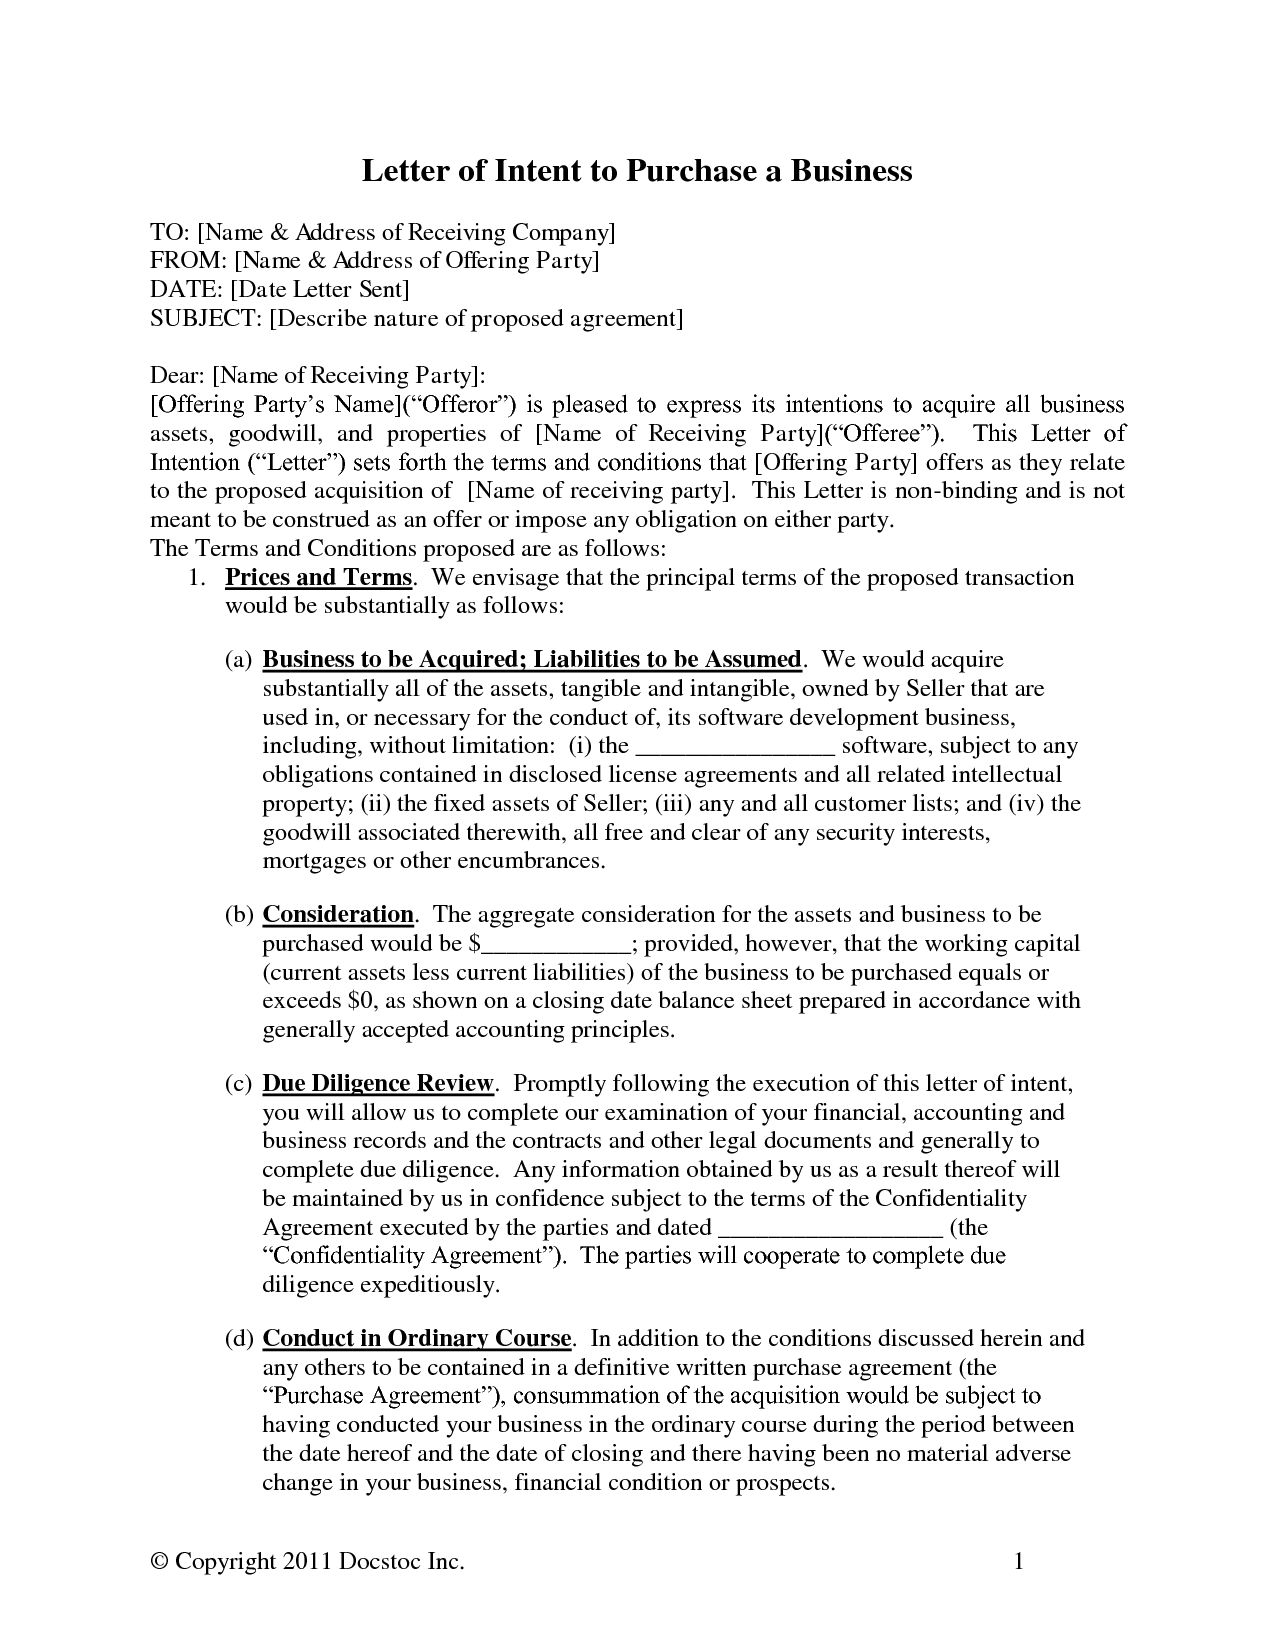 Letter of intent to purchase business template collection letter letter of intent to purchase business template acquisition business letters accmission Images